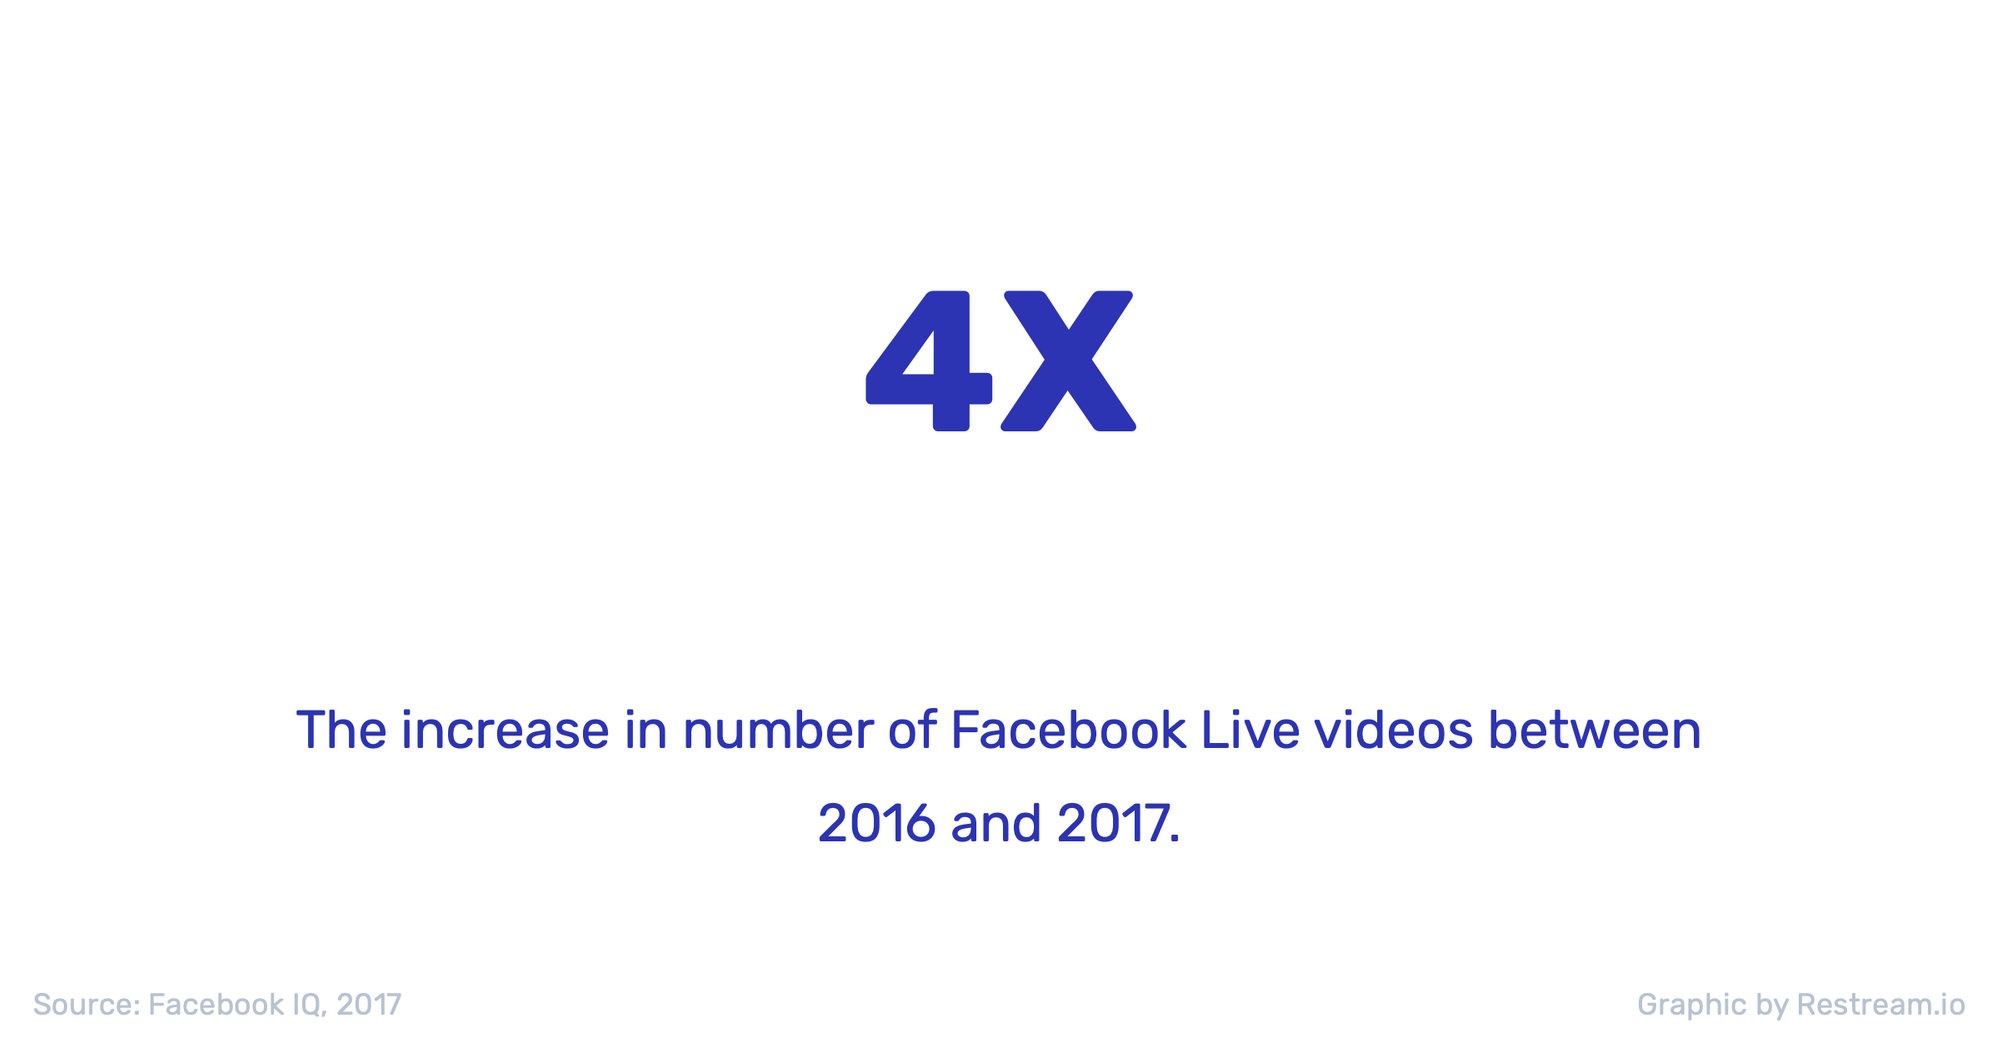 The increase in number of Facebook Live videos between 2016 and 2017 is 4x times